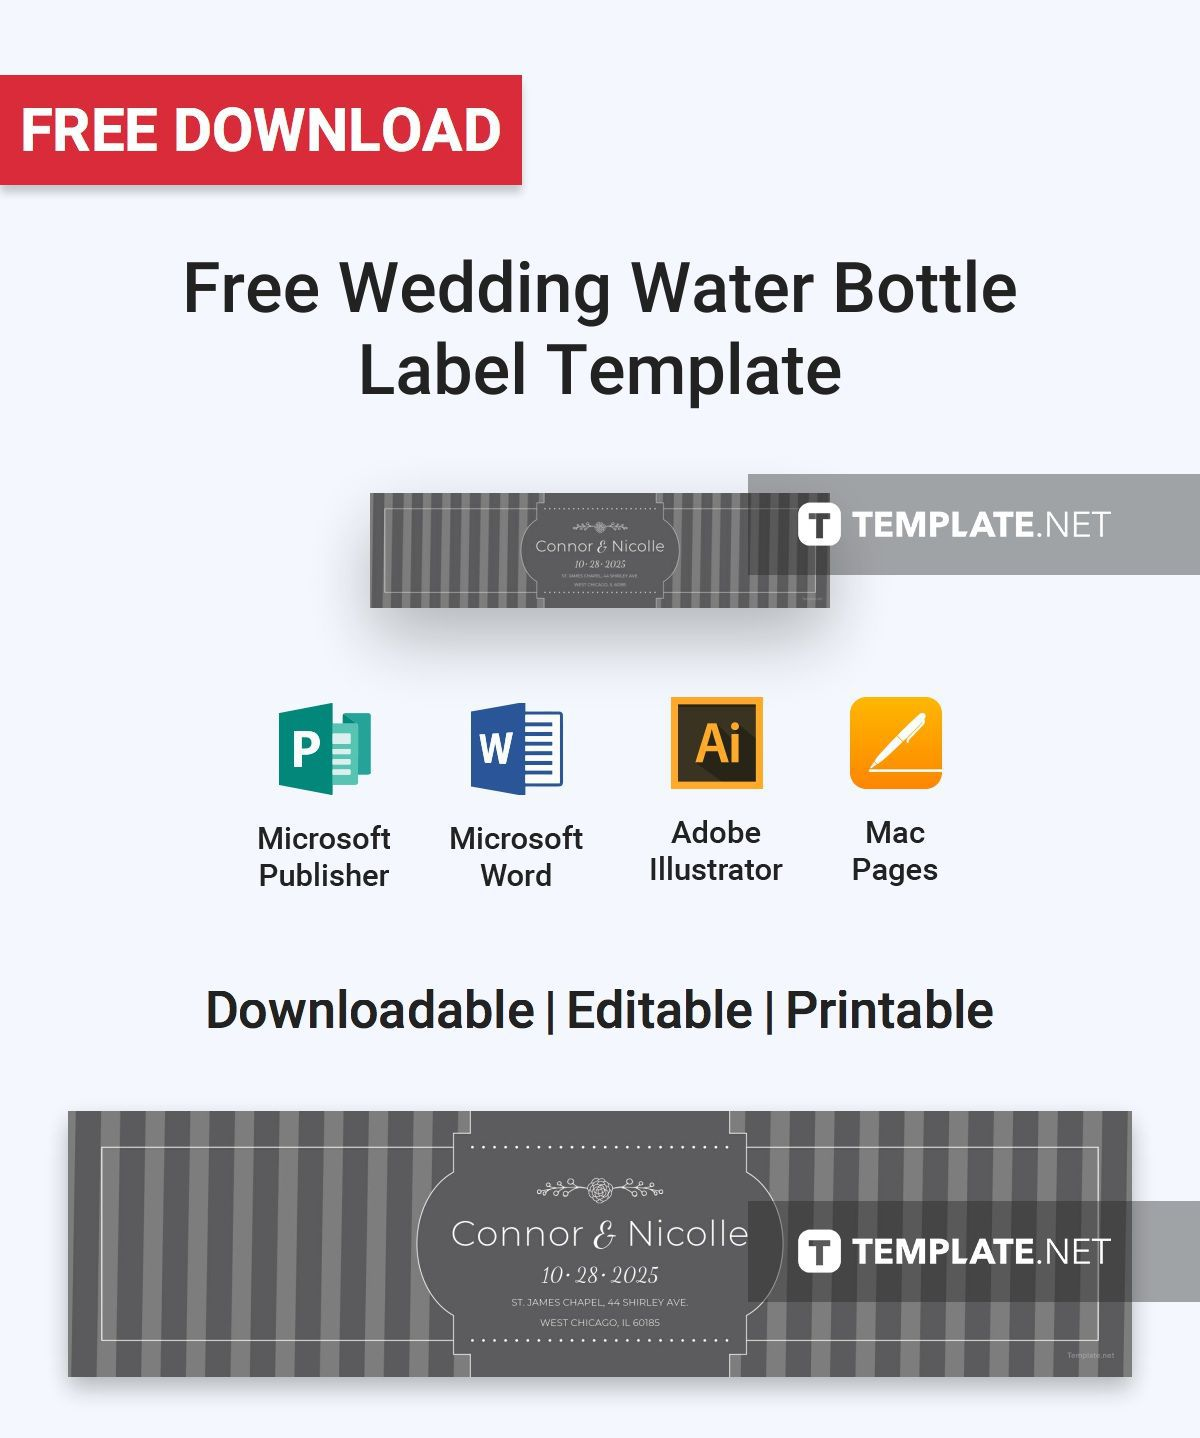 000 Fearsome Free Wedding Template For Word Water Bottle Label High Def  LabelsFull